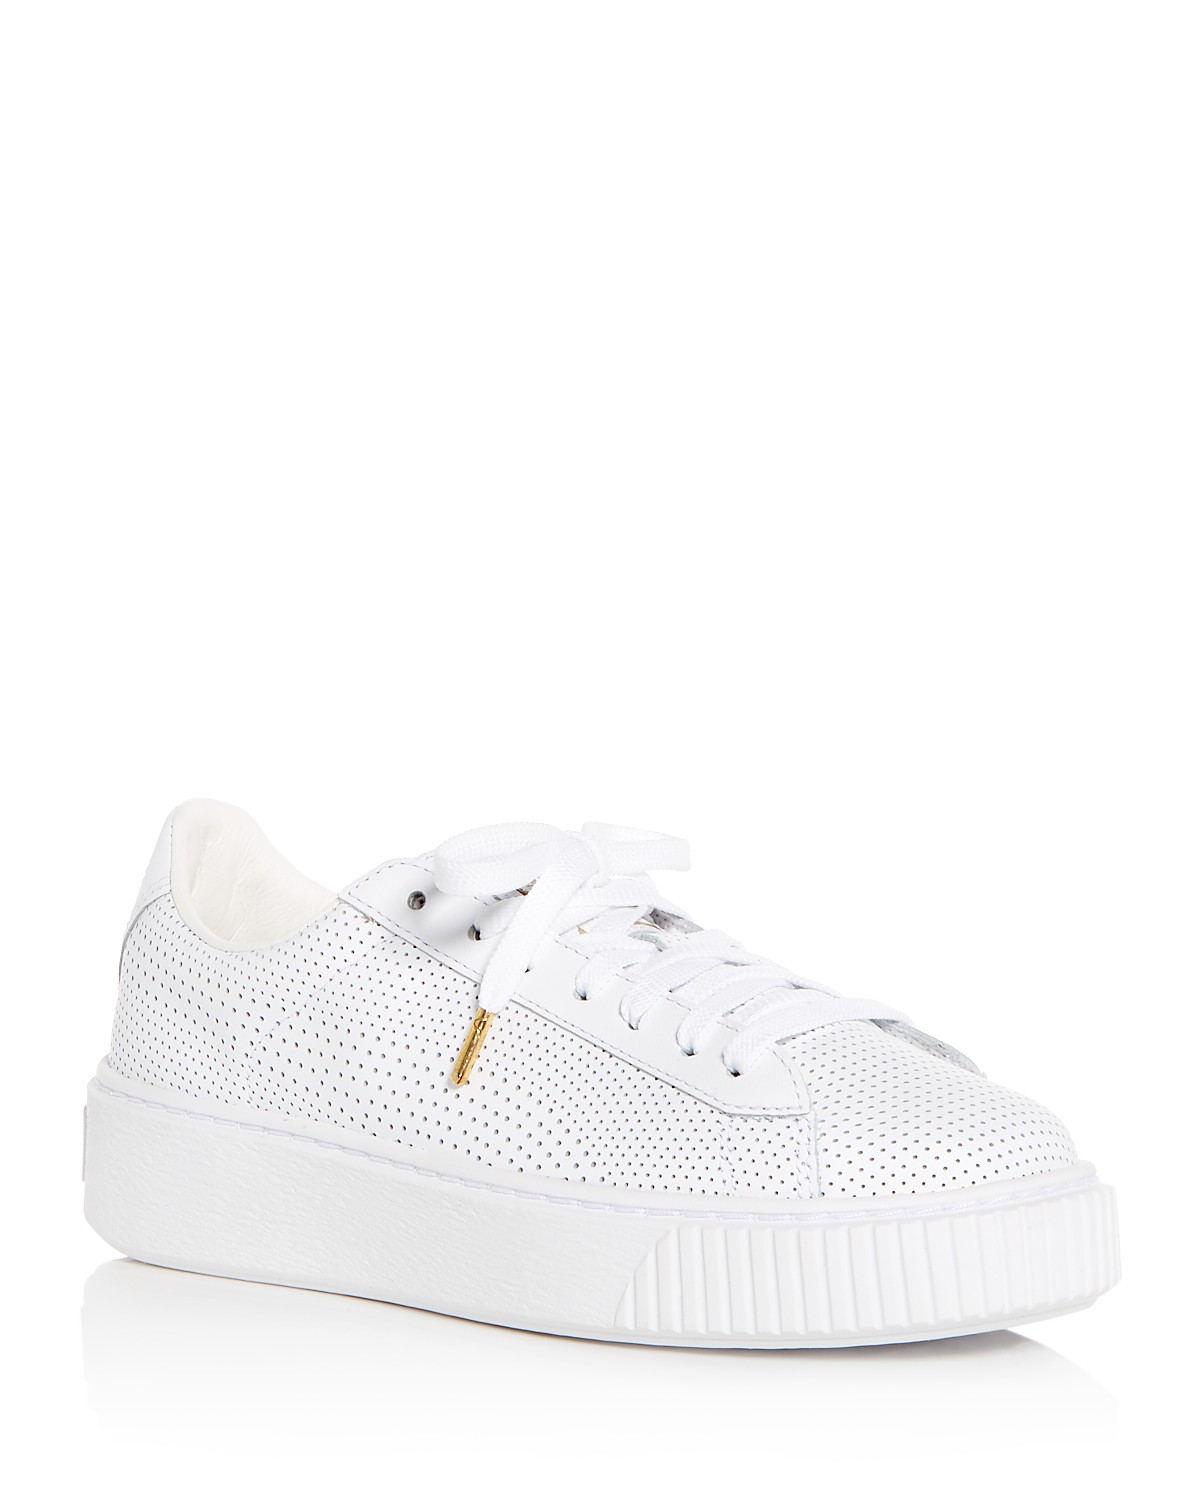 Puma Women's Basket Perforated Leather Lace Up Platform Sneakers jKq1vkt